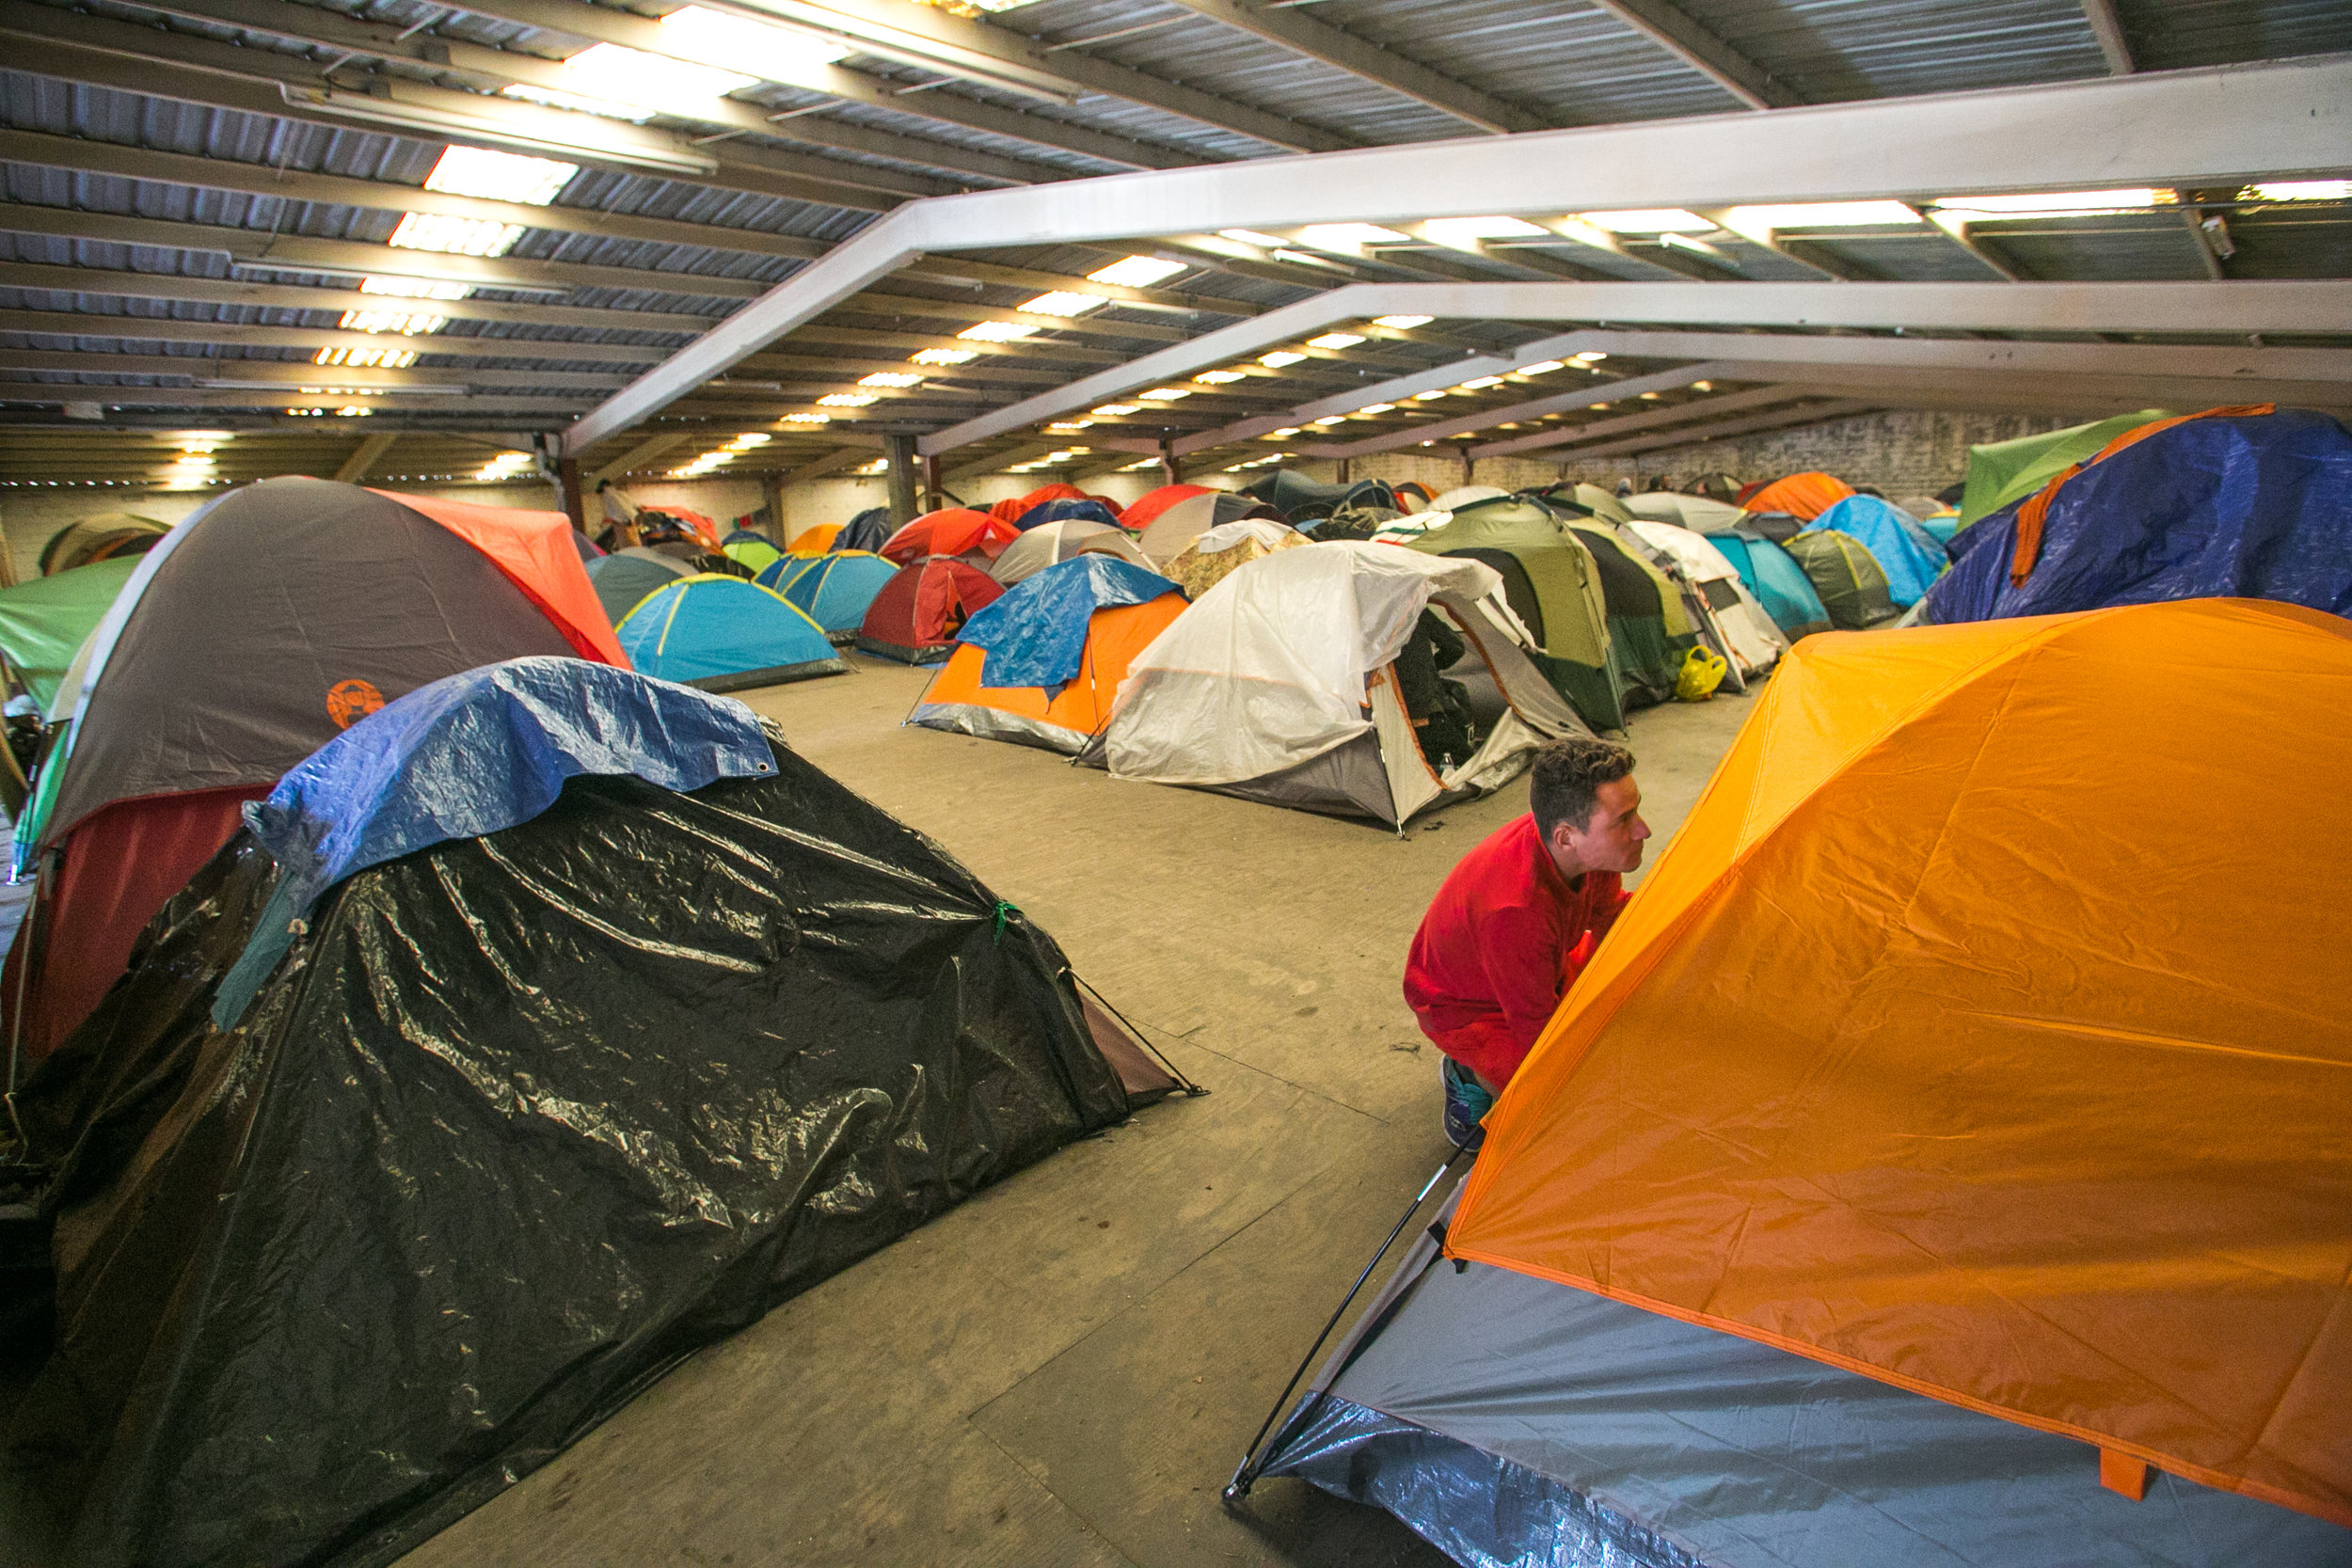 Tents line the second story of the El Chinchetta refugee compound in Central Tijuana. The building is home to 300-400 Central American migrants. Due to complaints from local residents, all medical, food, and donation services were suspended last week in an effort to re-locate the refugees, and close the facility.